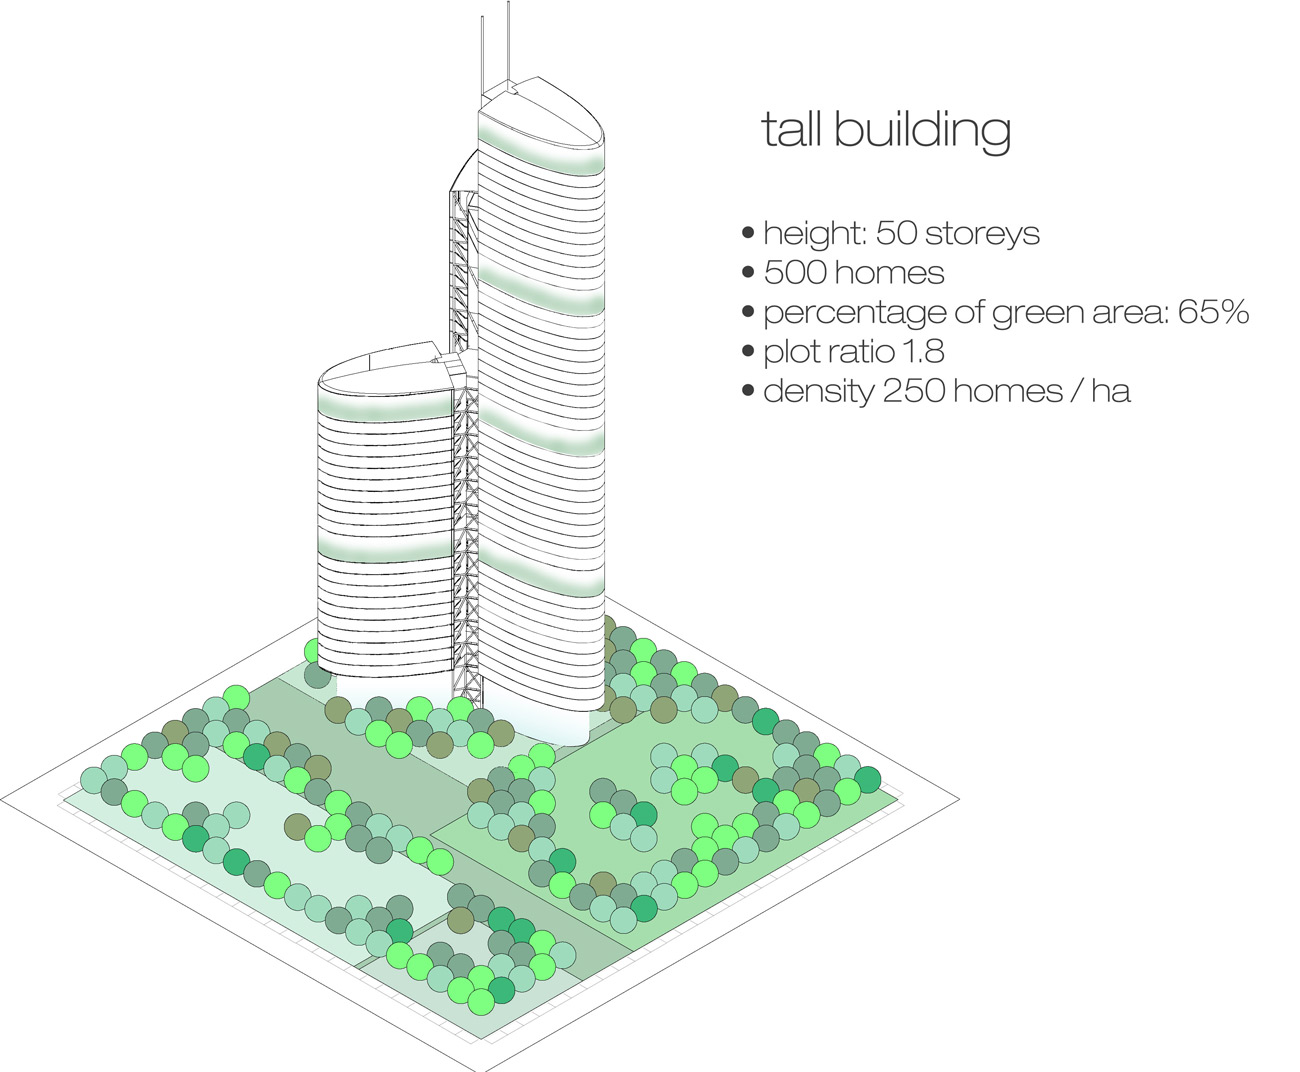 Skyhouse tall rise diagram by Marks Barfield Architects